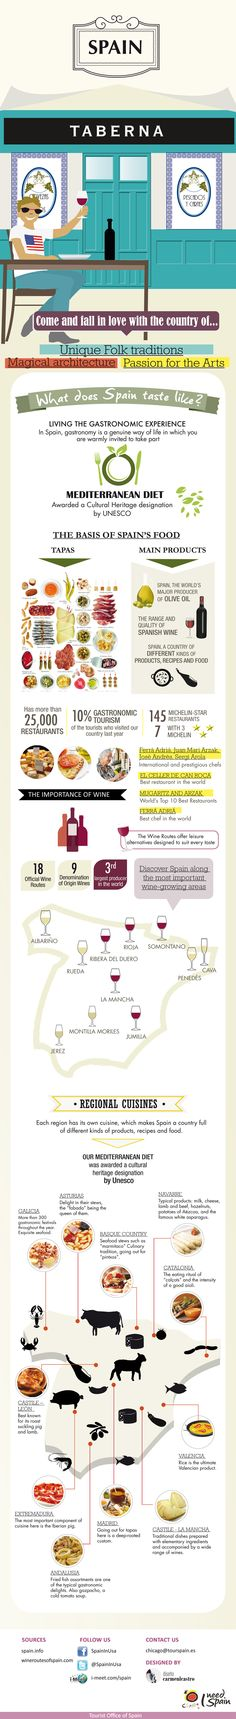 In Spain, gastronomy is a genuine way of life in which you are warmly invited to take part through this Infographic.  Our Mediterranean diet, which was awarded a Cultural Heritage designation by the UNESCO, is the basis of Spain's food. Each region has its own cuisine, which makes Spain a country full of different kinds of products, recipes and food.